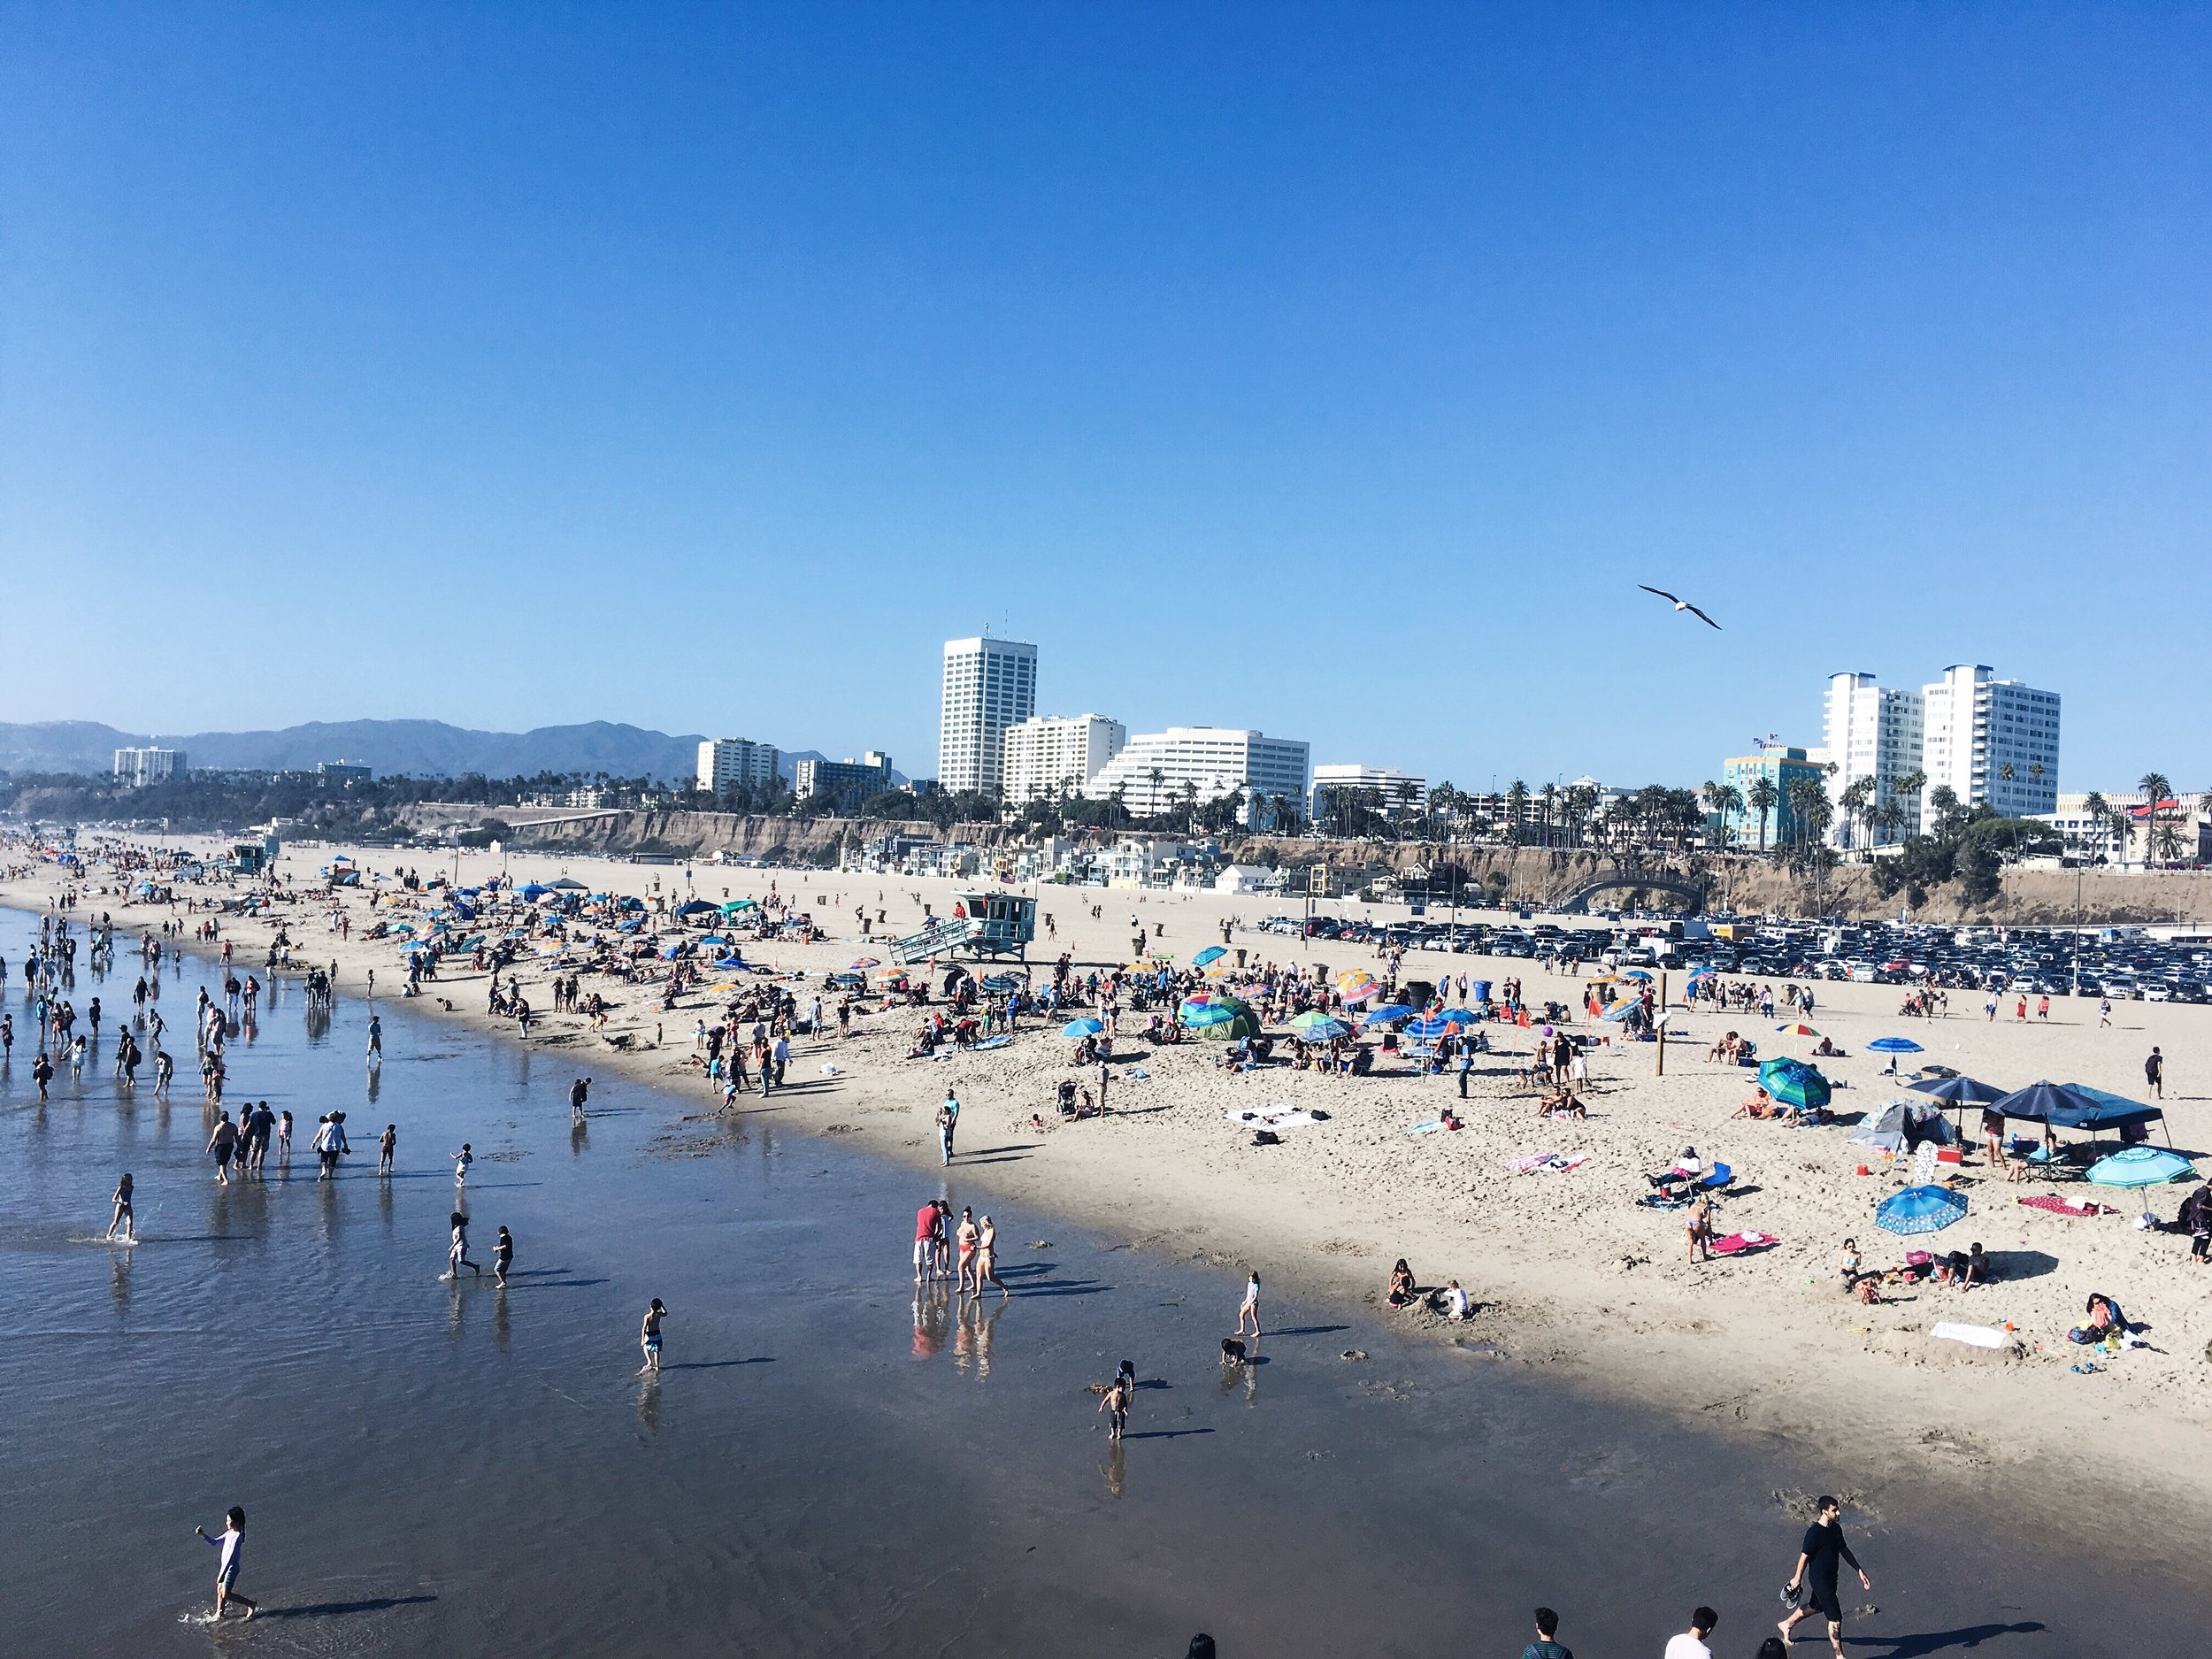 Check the blog for more info about Santa Monica